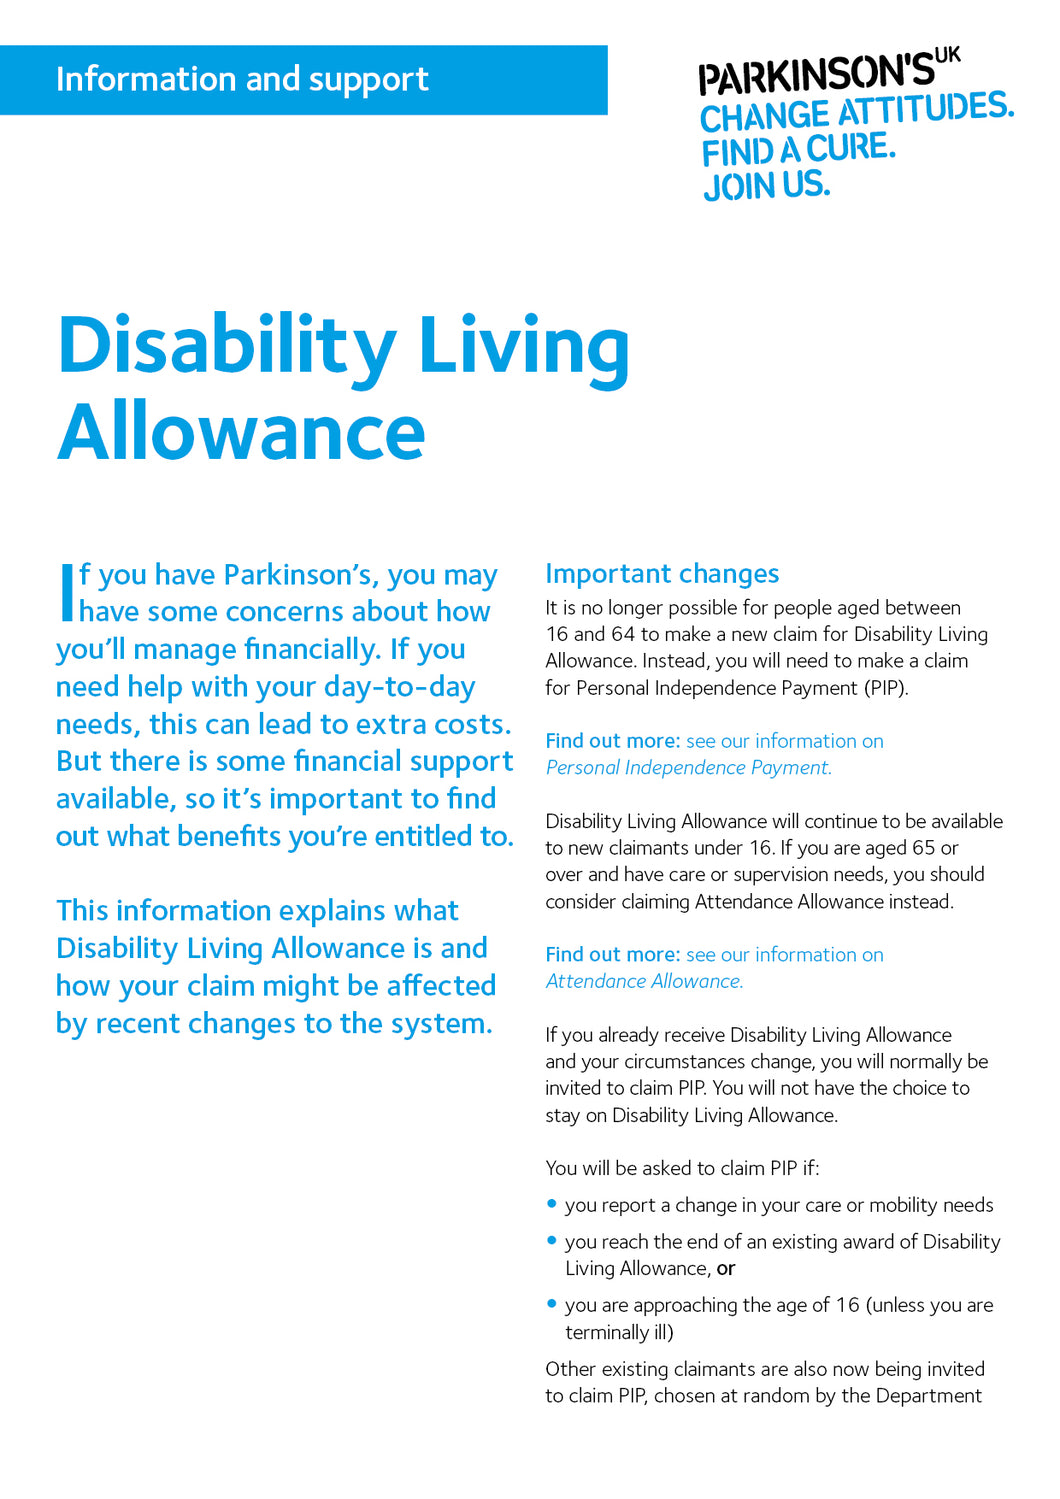 Disability Living Allowance - Parkinson's shop